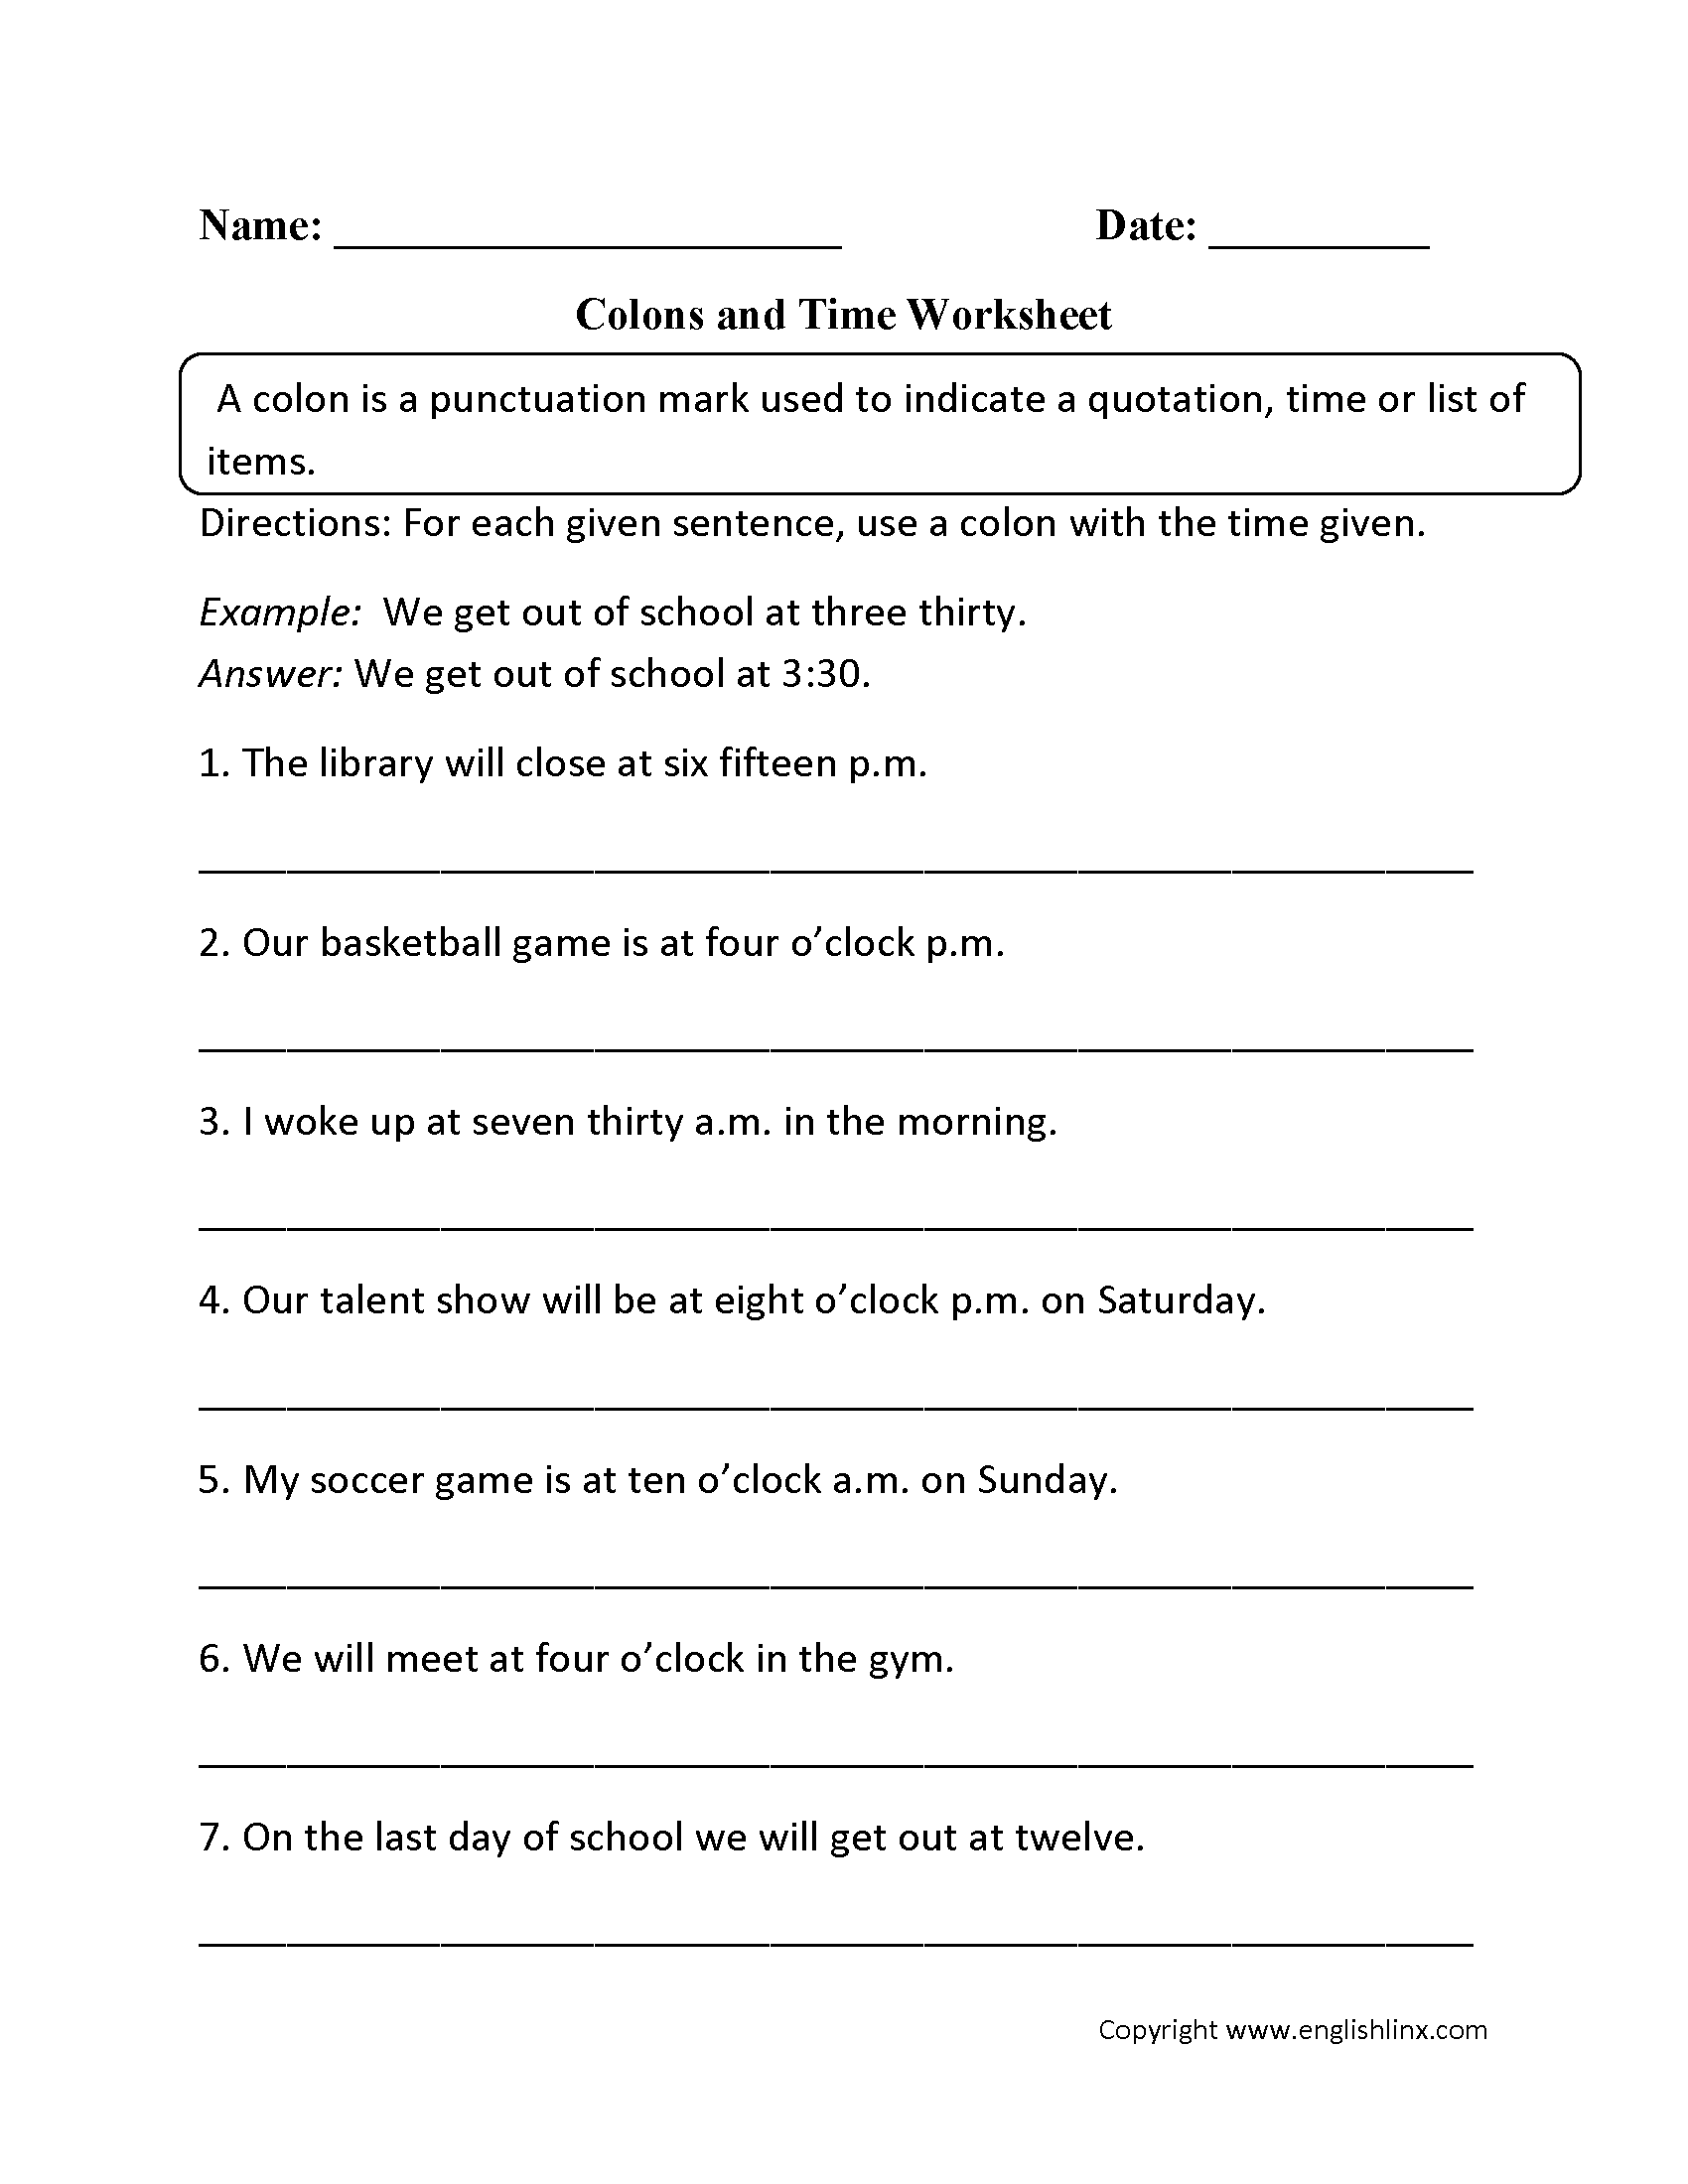 Worksheets Spelling Worksheets For 6th Grade punctuation worksheets colon worksheets